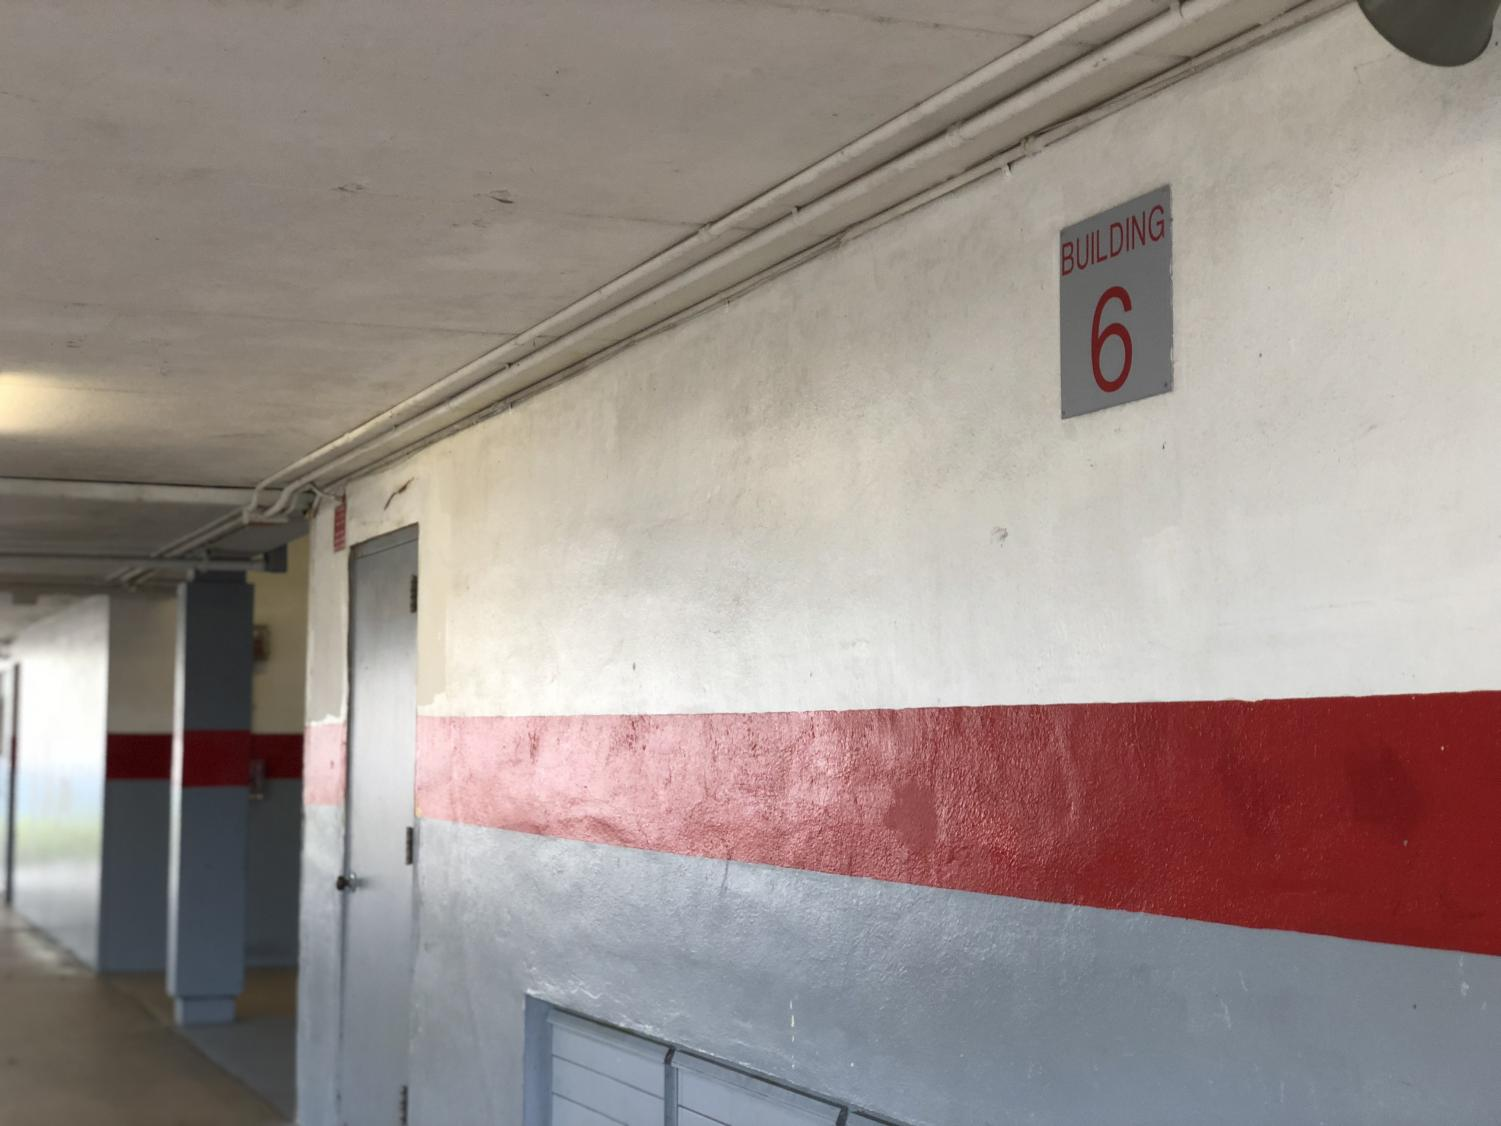 Building 6 will be one of the sites to receive renovations.